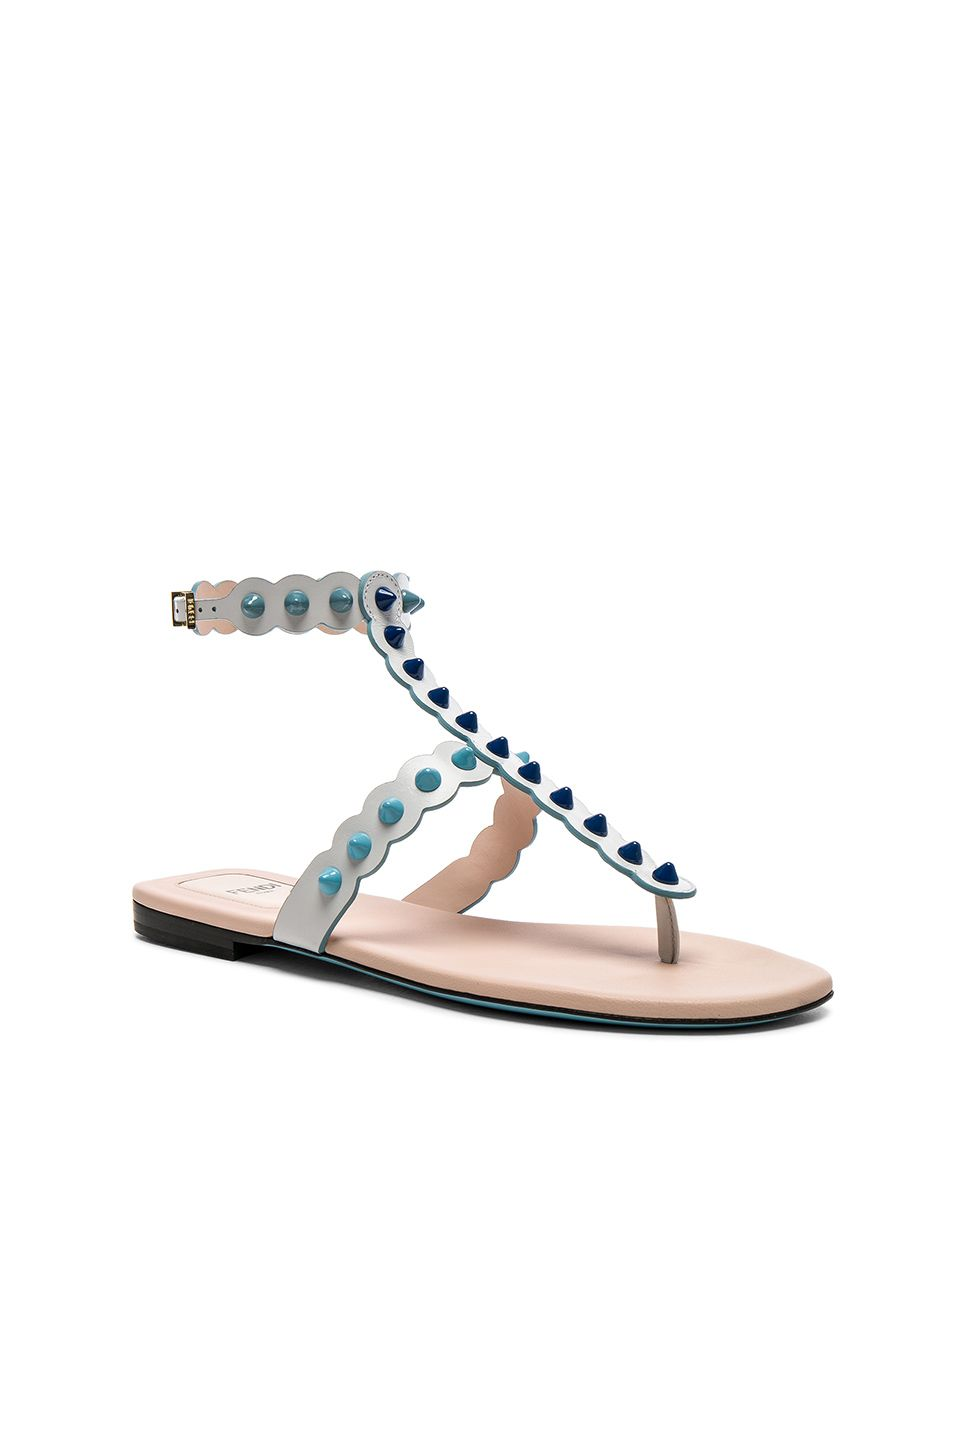 d2640aee4308c Fendi Studded Leather Gladiator Sandals in White   Multi